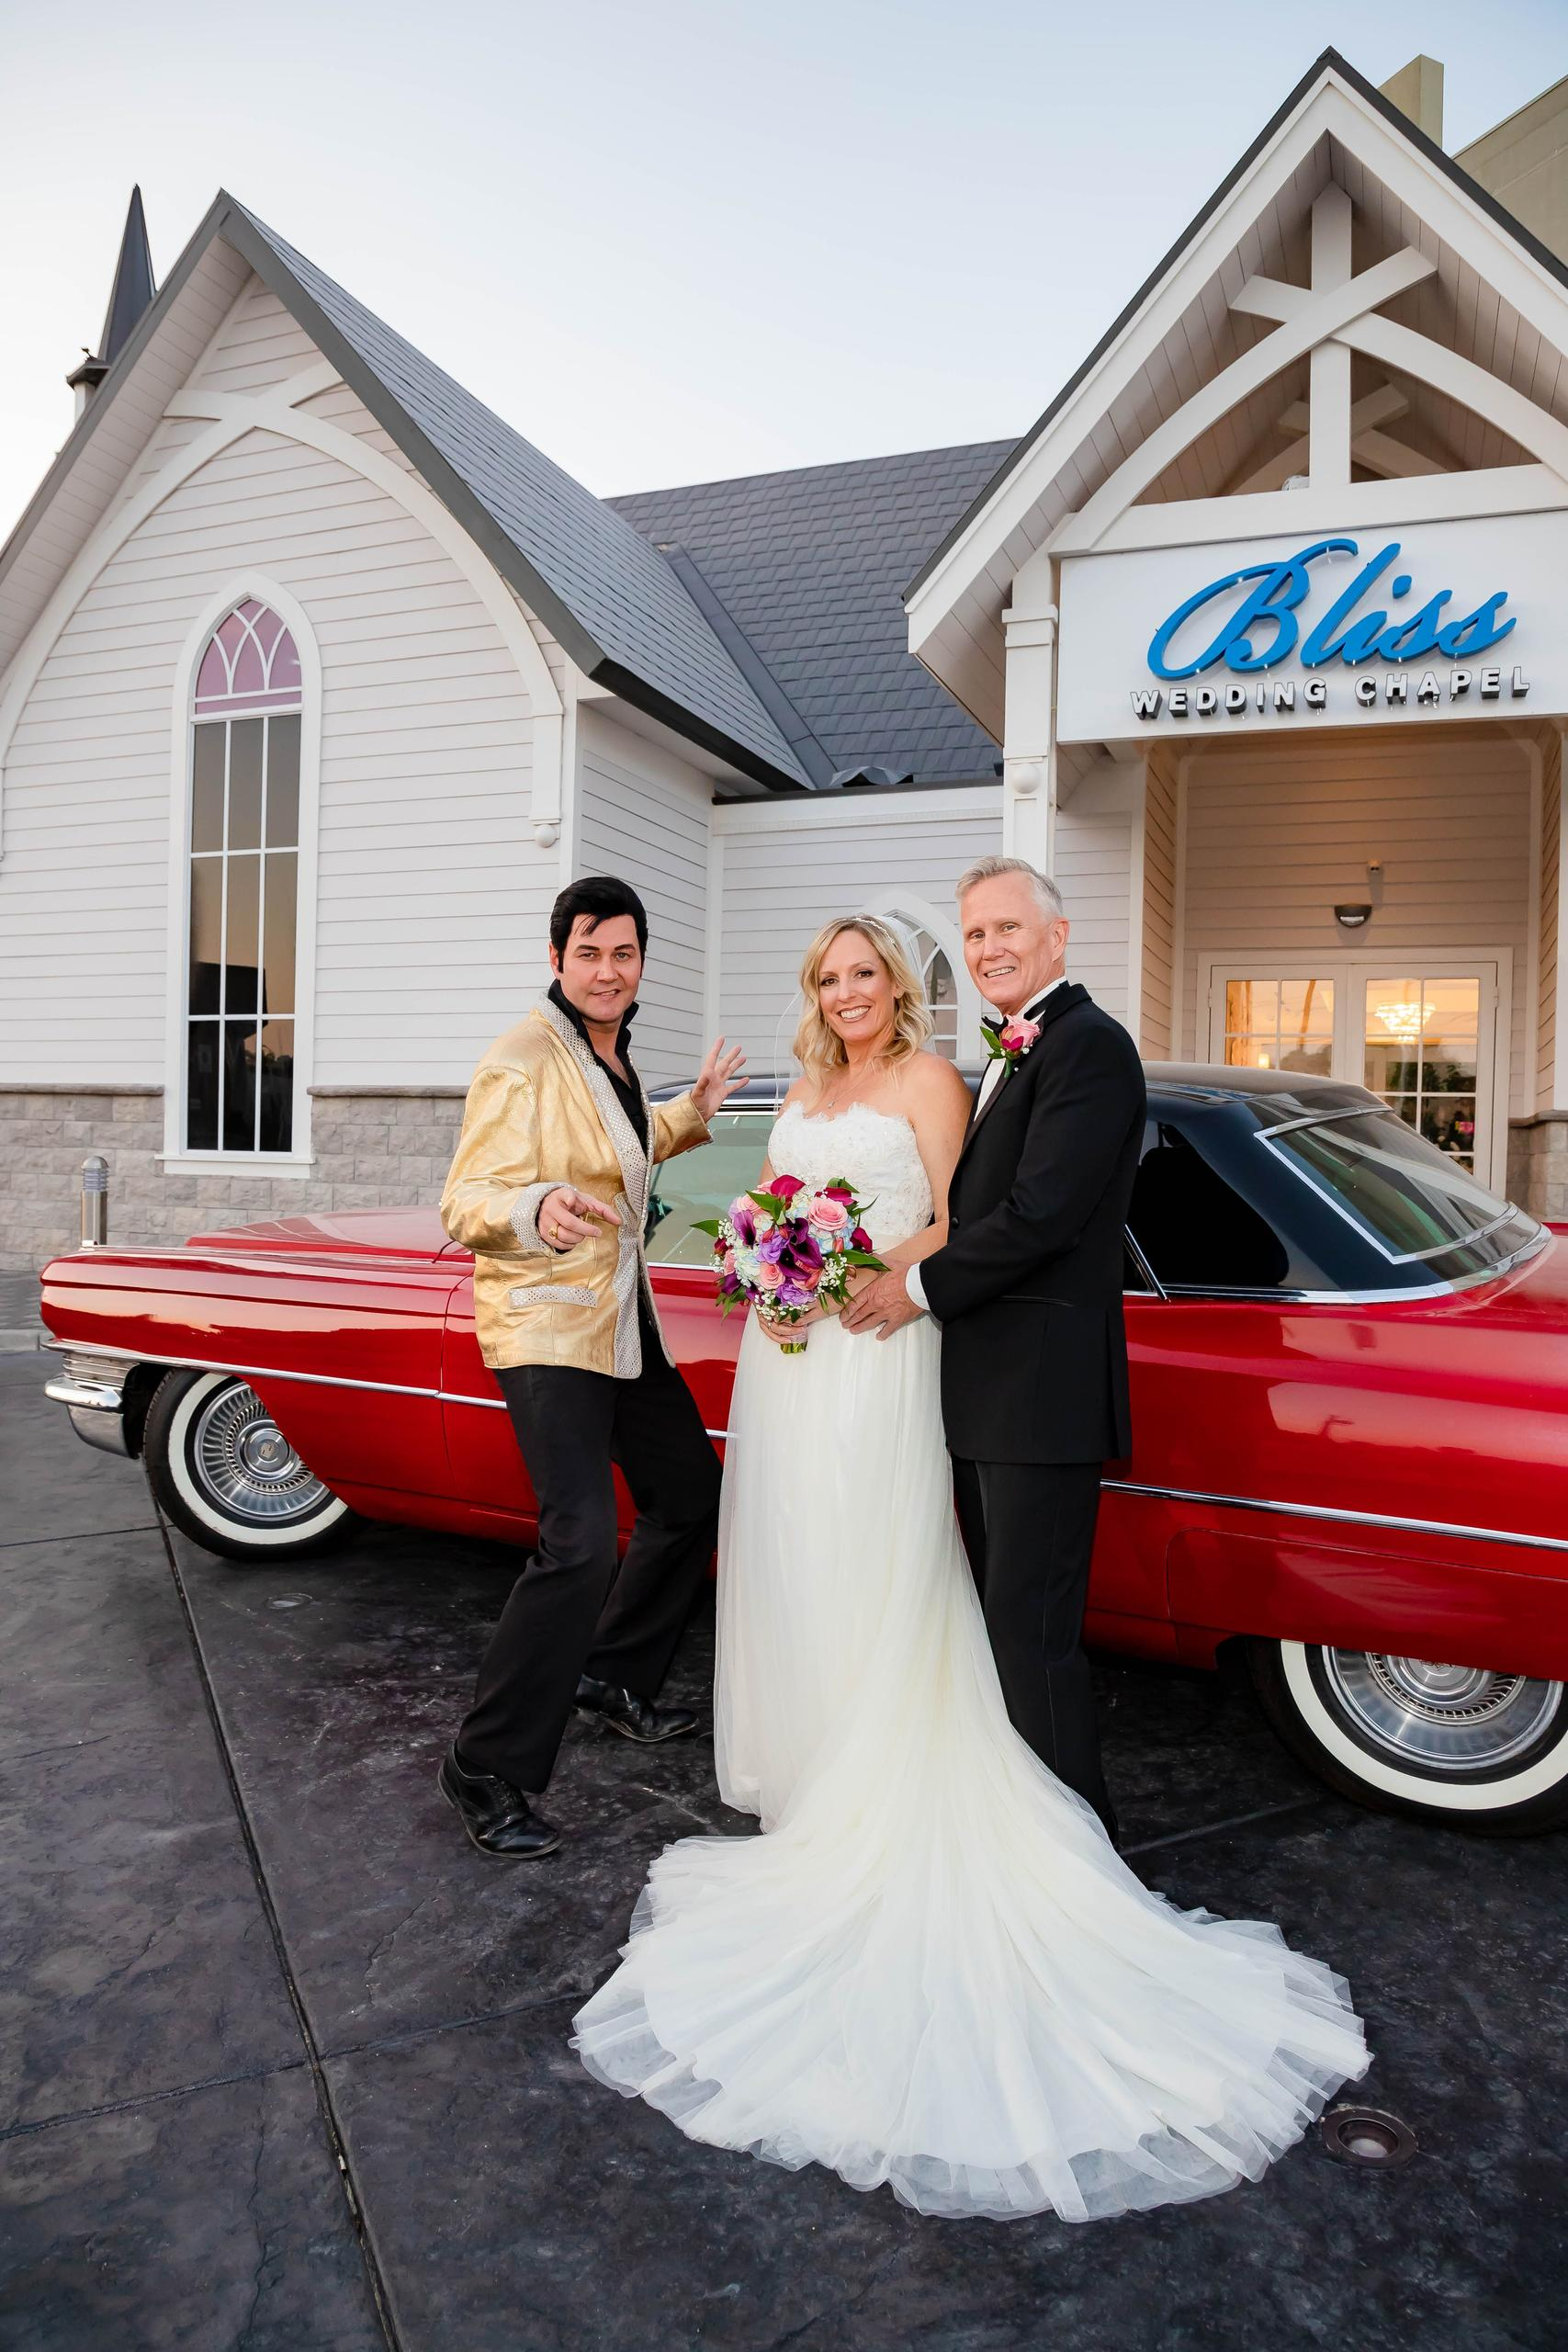 Viva Las Vegas, get Hitched by Elvis, including songs performed in the stunning main Chapel included transportation in a dream stretch limo